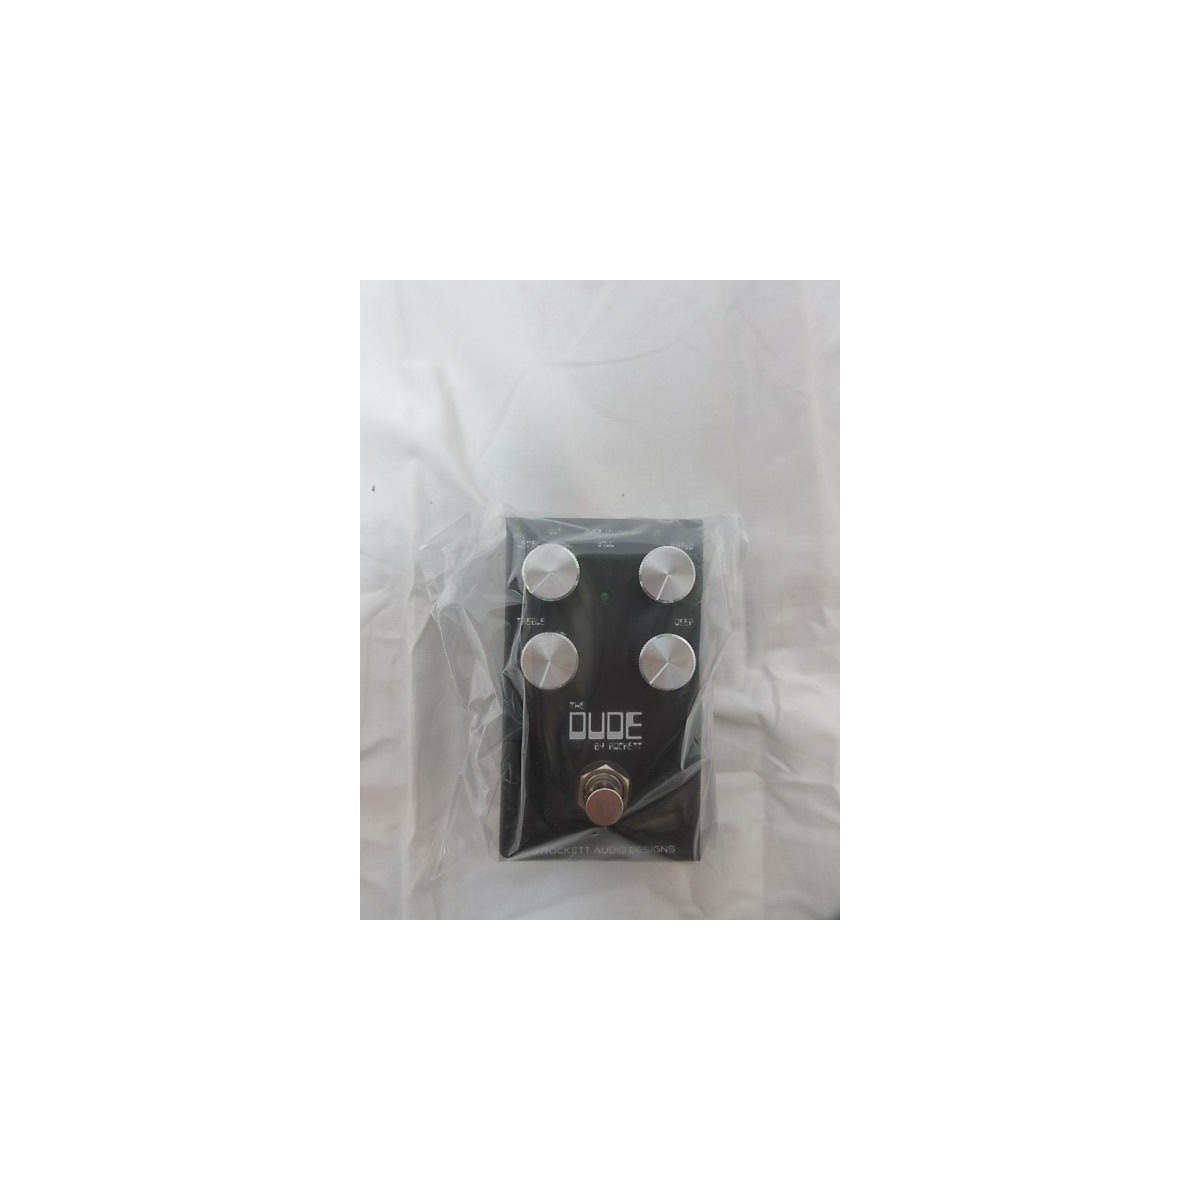 Rockett Pedals THE DUDE V2 Effect Pedal